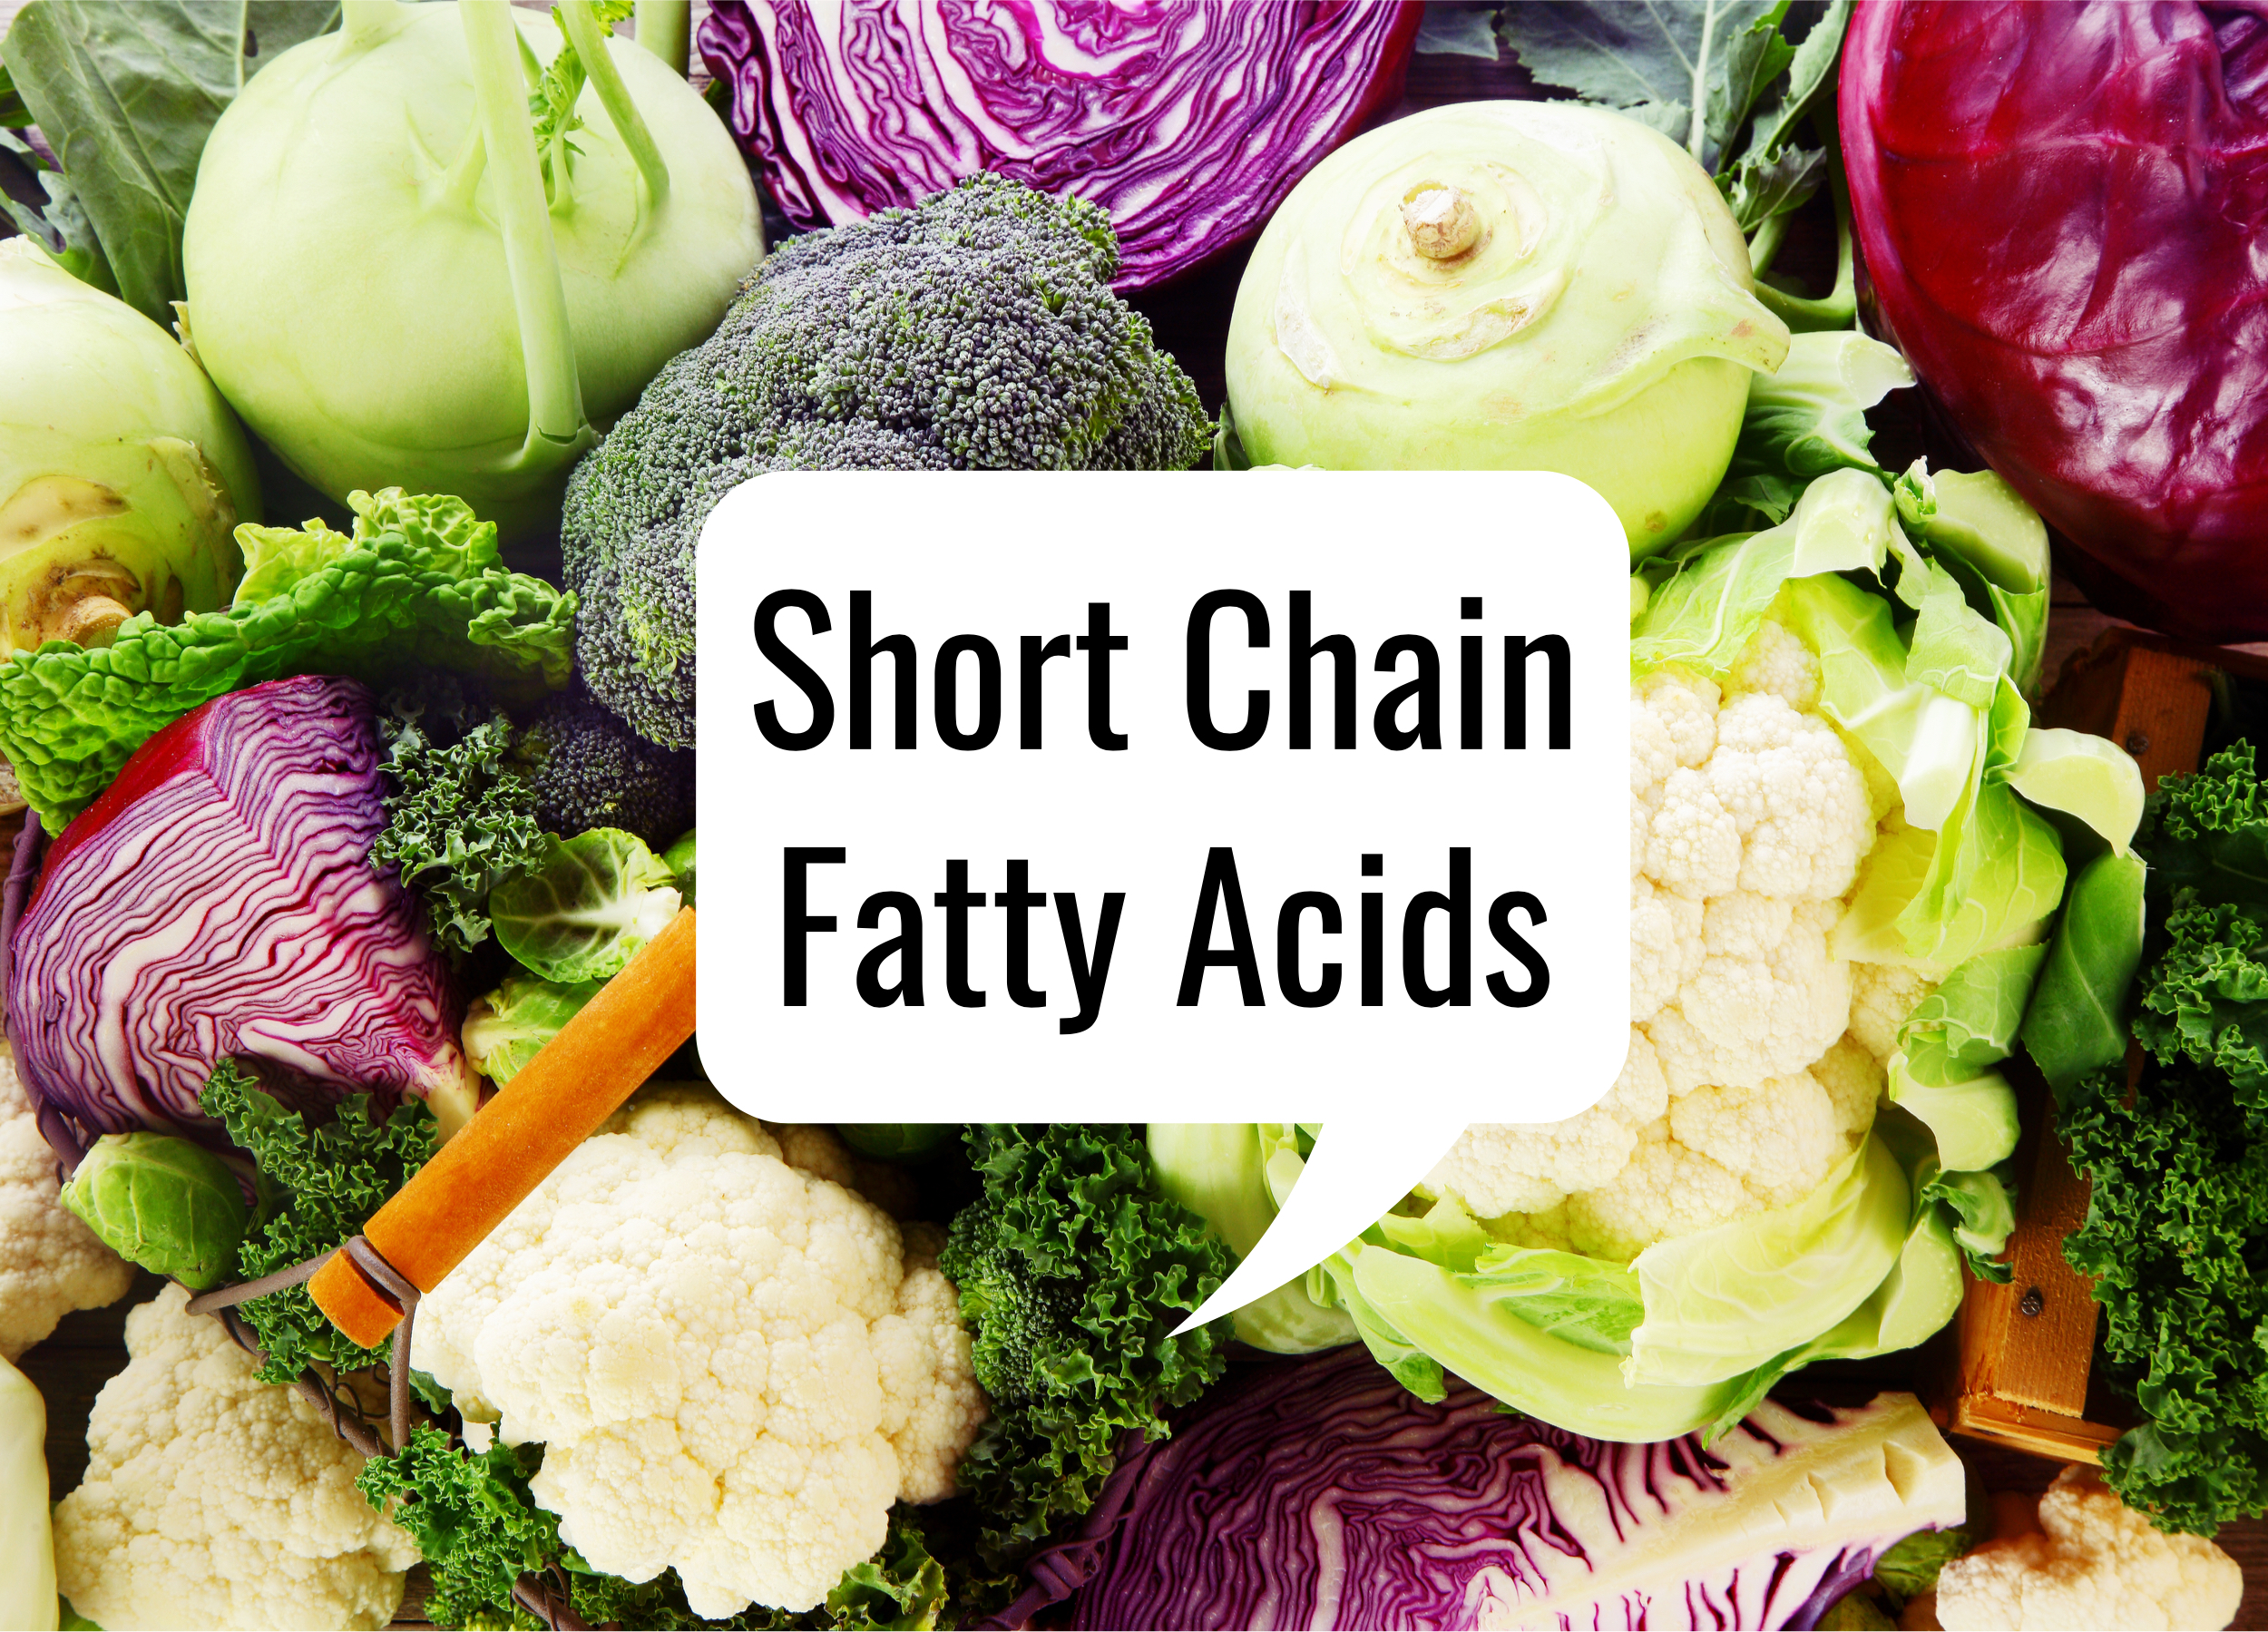 Short Chain Fatty Acids – The one thing standing between you and optimal health